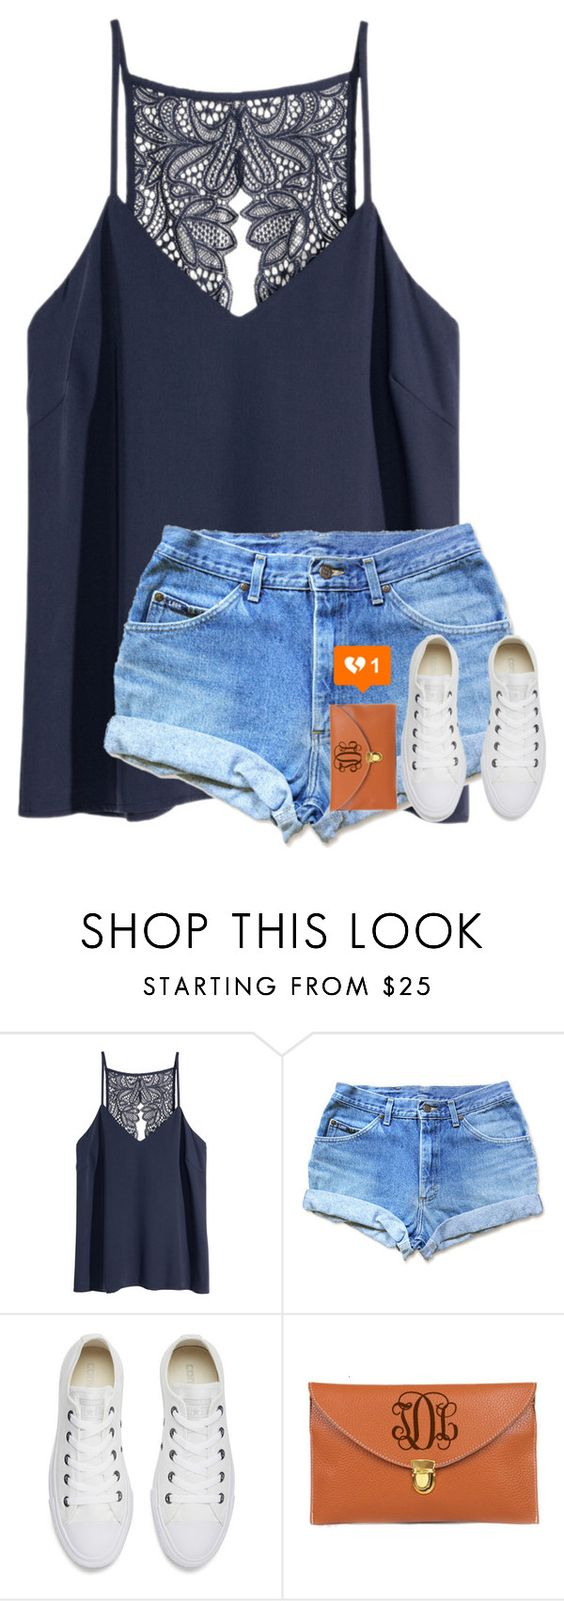 """""""Ugh the new IOS emojis got me like 🙄"""" by sarab873 ❤ liked on Polyvore featuring Converse"""